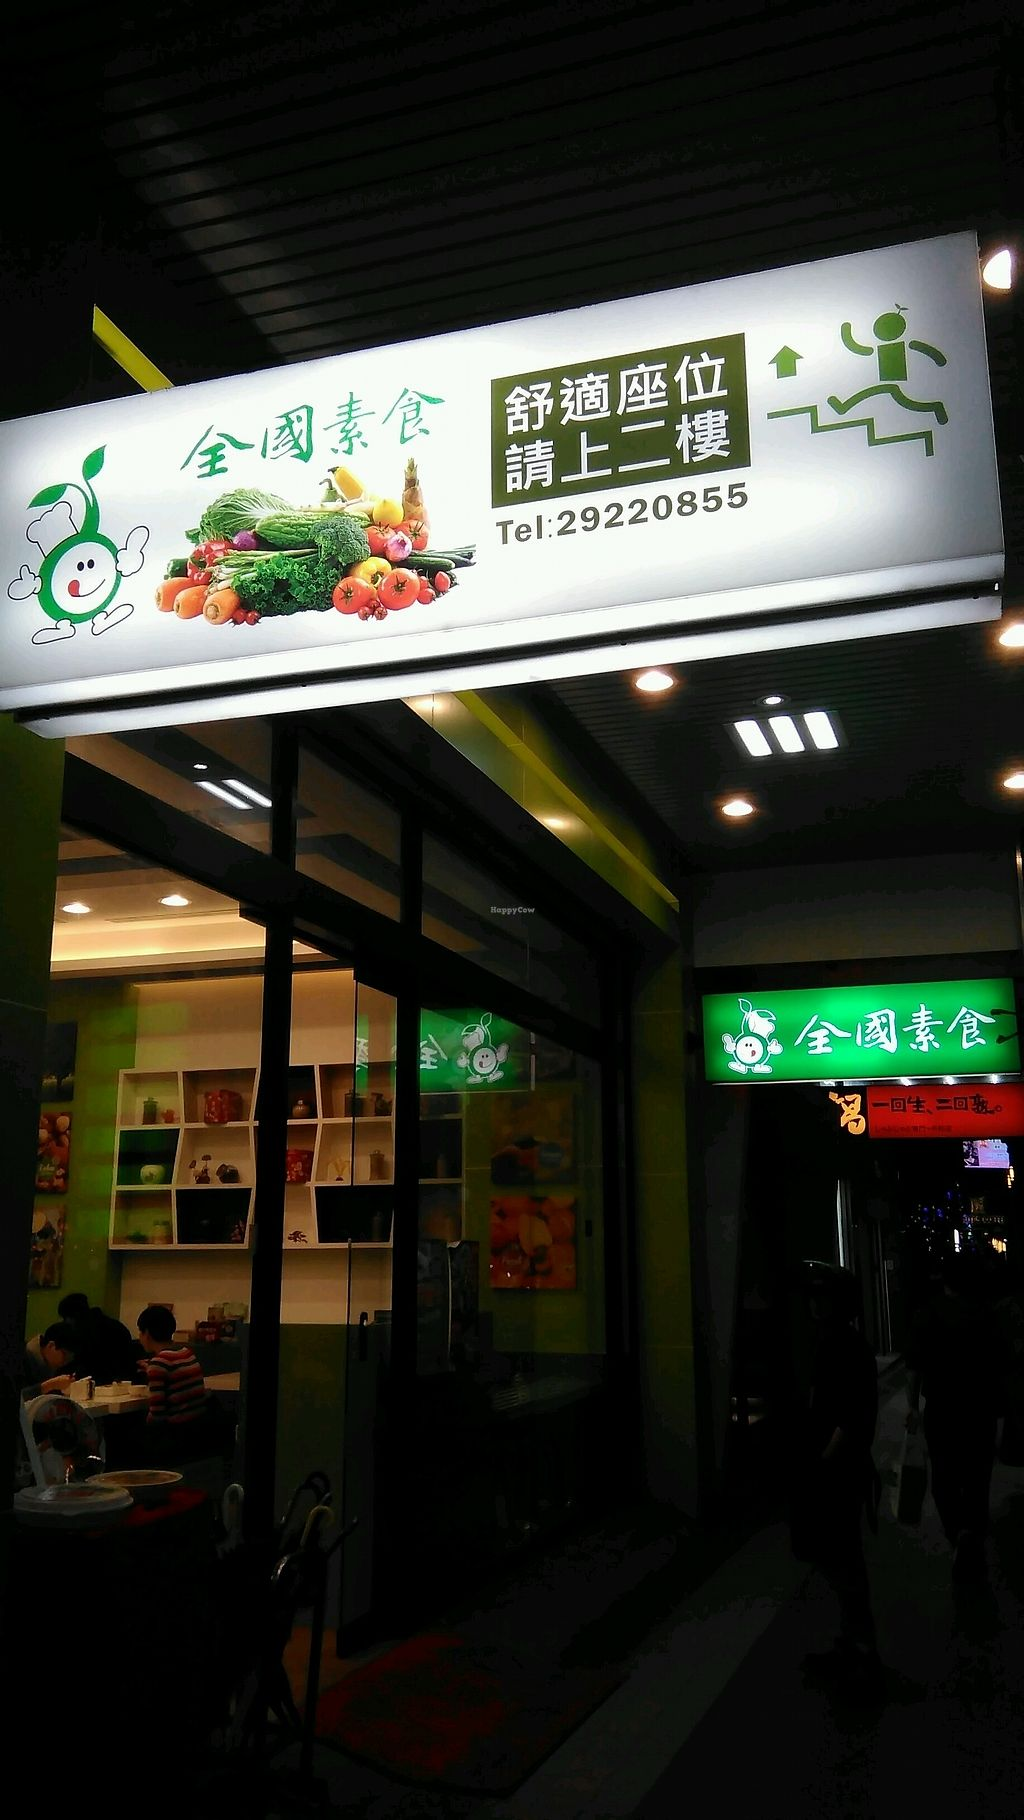 """Photo of Quan Guo Jian Kang  by <a href=""""/members/profile/CarinaJ.Rother"""">CarinaJ.Rother</a> <br/>entrance signs  <br/> January 18, 2018  - <a href='/contact/abuse/image/109140/347930'>Report</a>"""